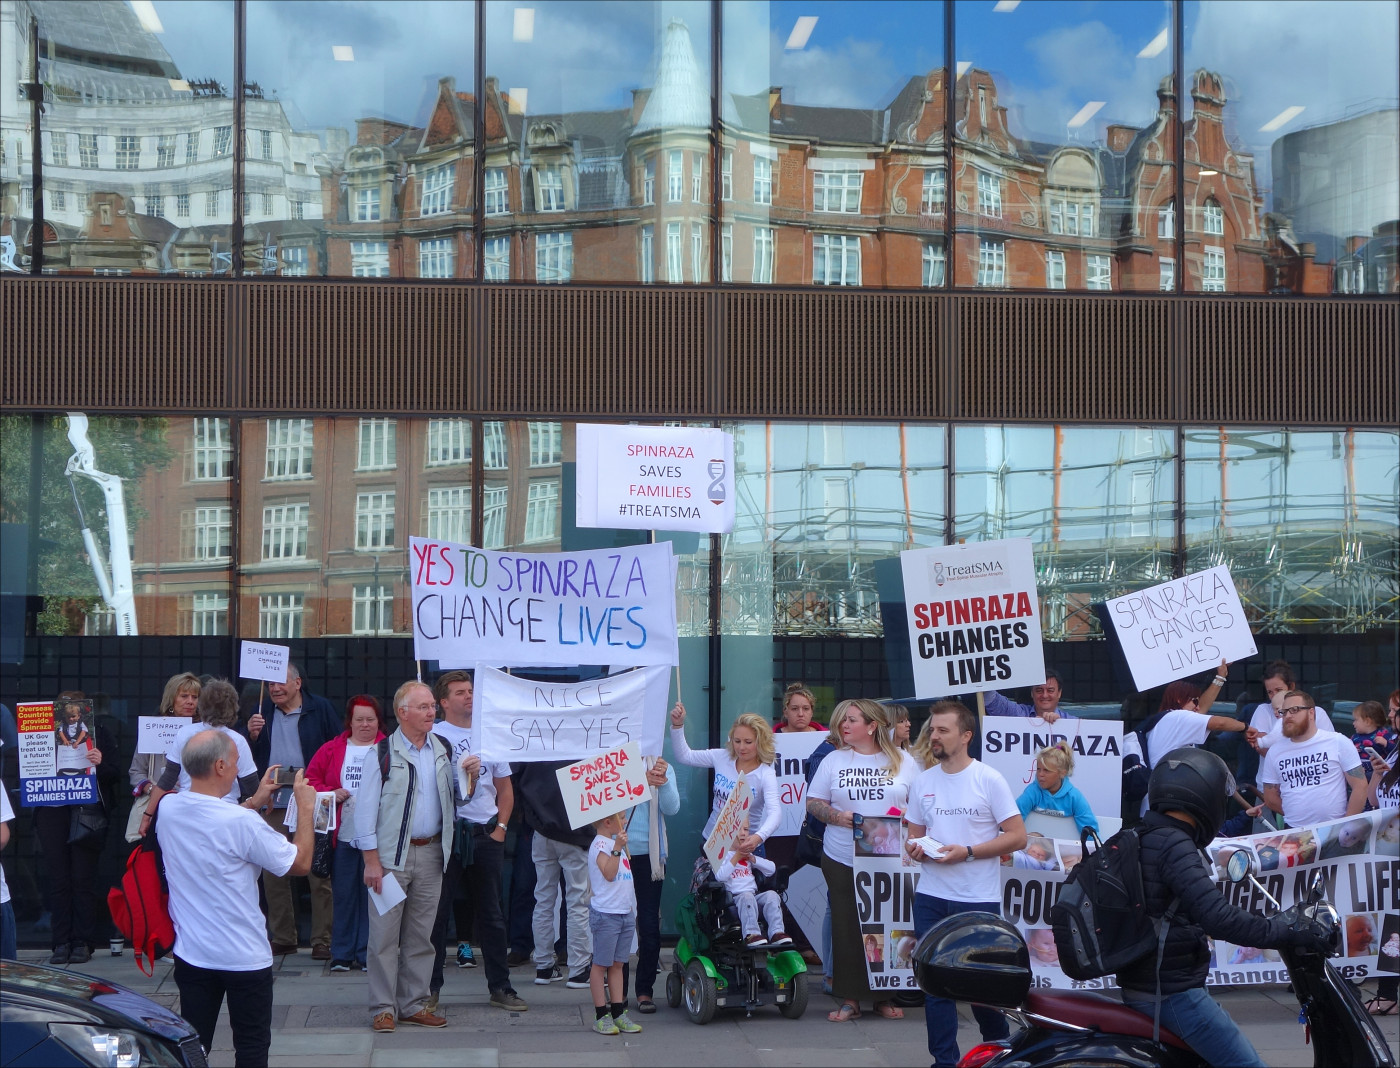 Spinraza protests